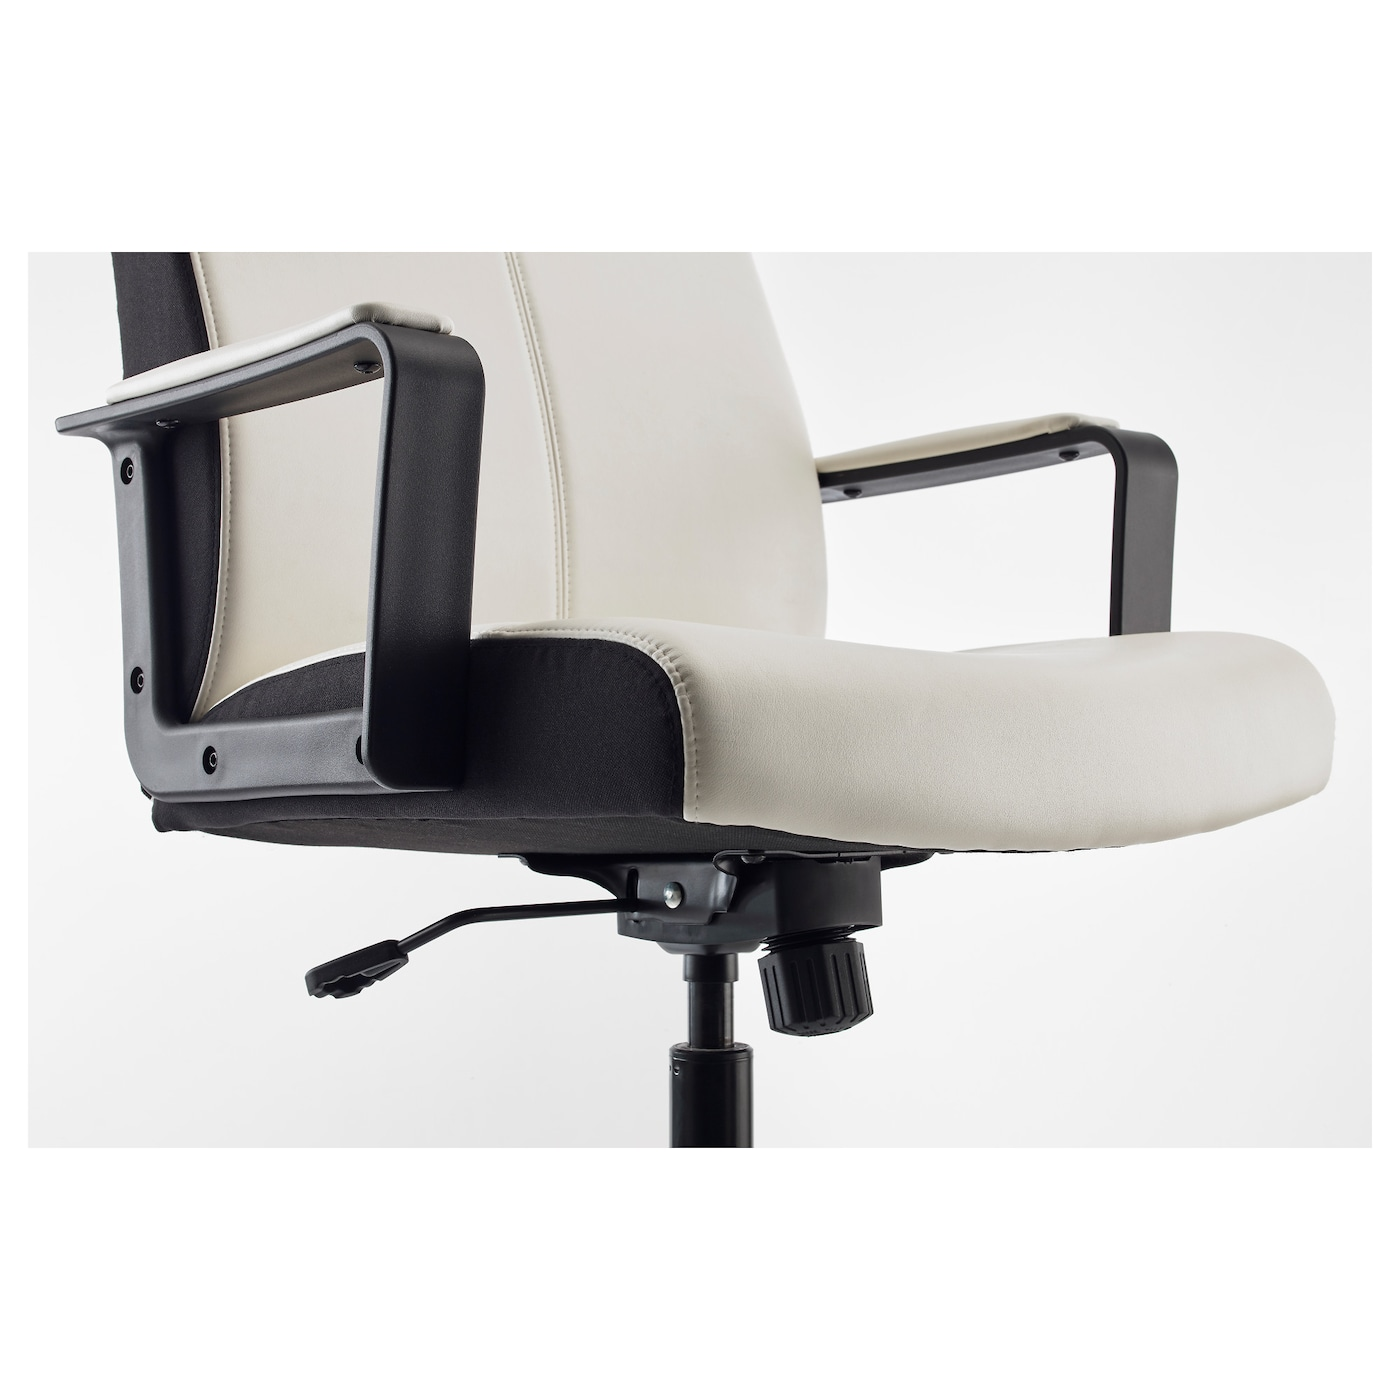 desk mid full chair white color computer executive furniture combination for chairs wheels back pc ideas size home and collection with gamer gaming design of best office relaxing black officeworks